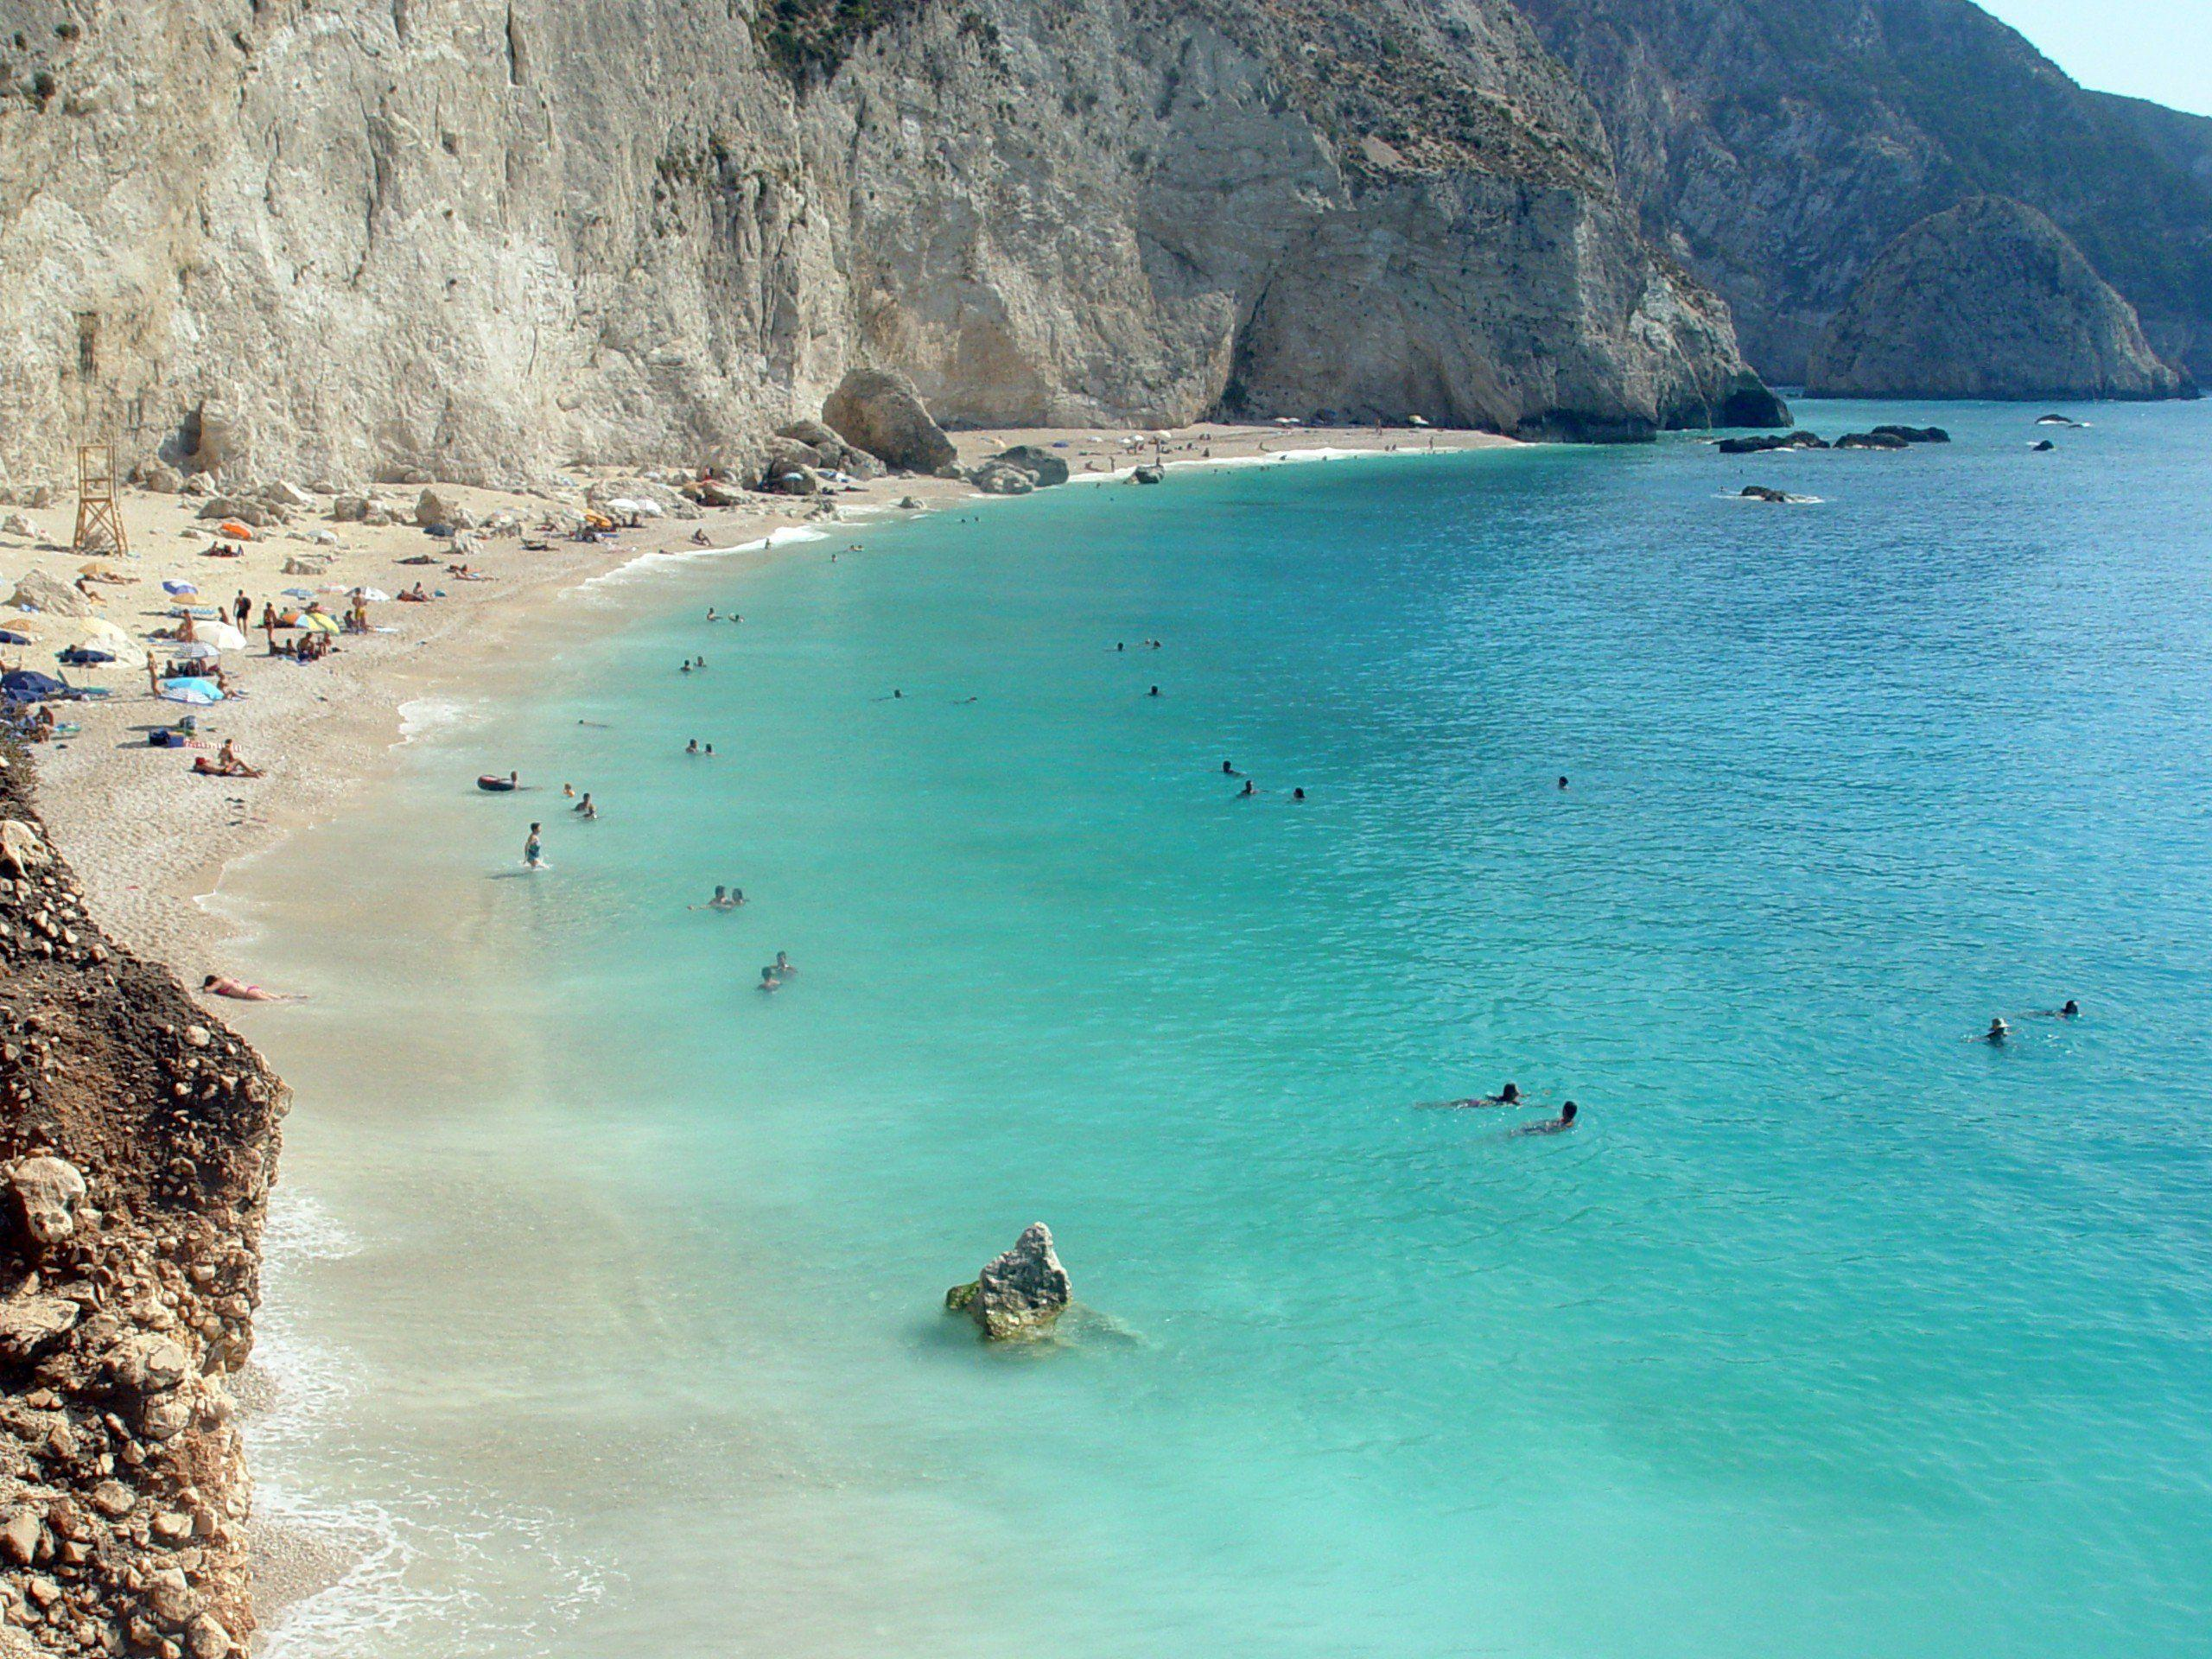 porto katsiki lefkada greece wallpapers and backgrounds